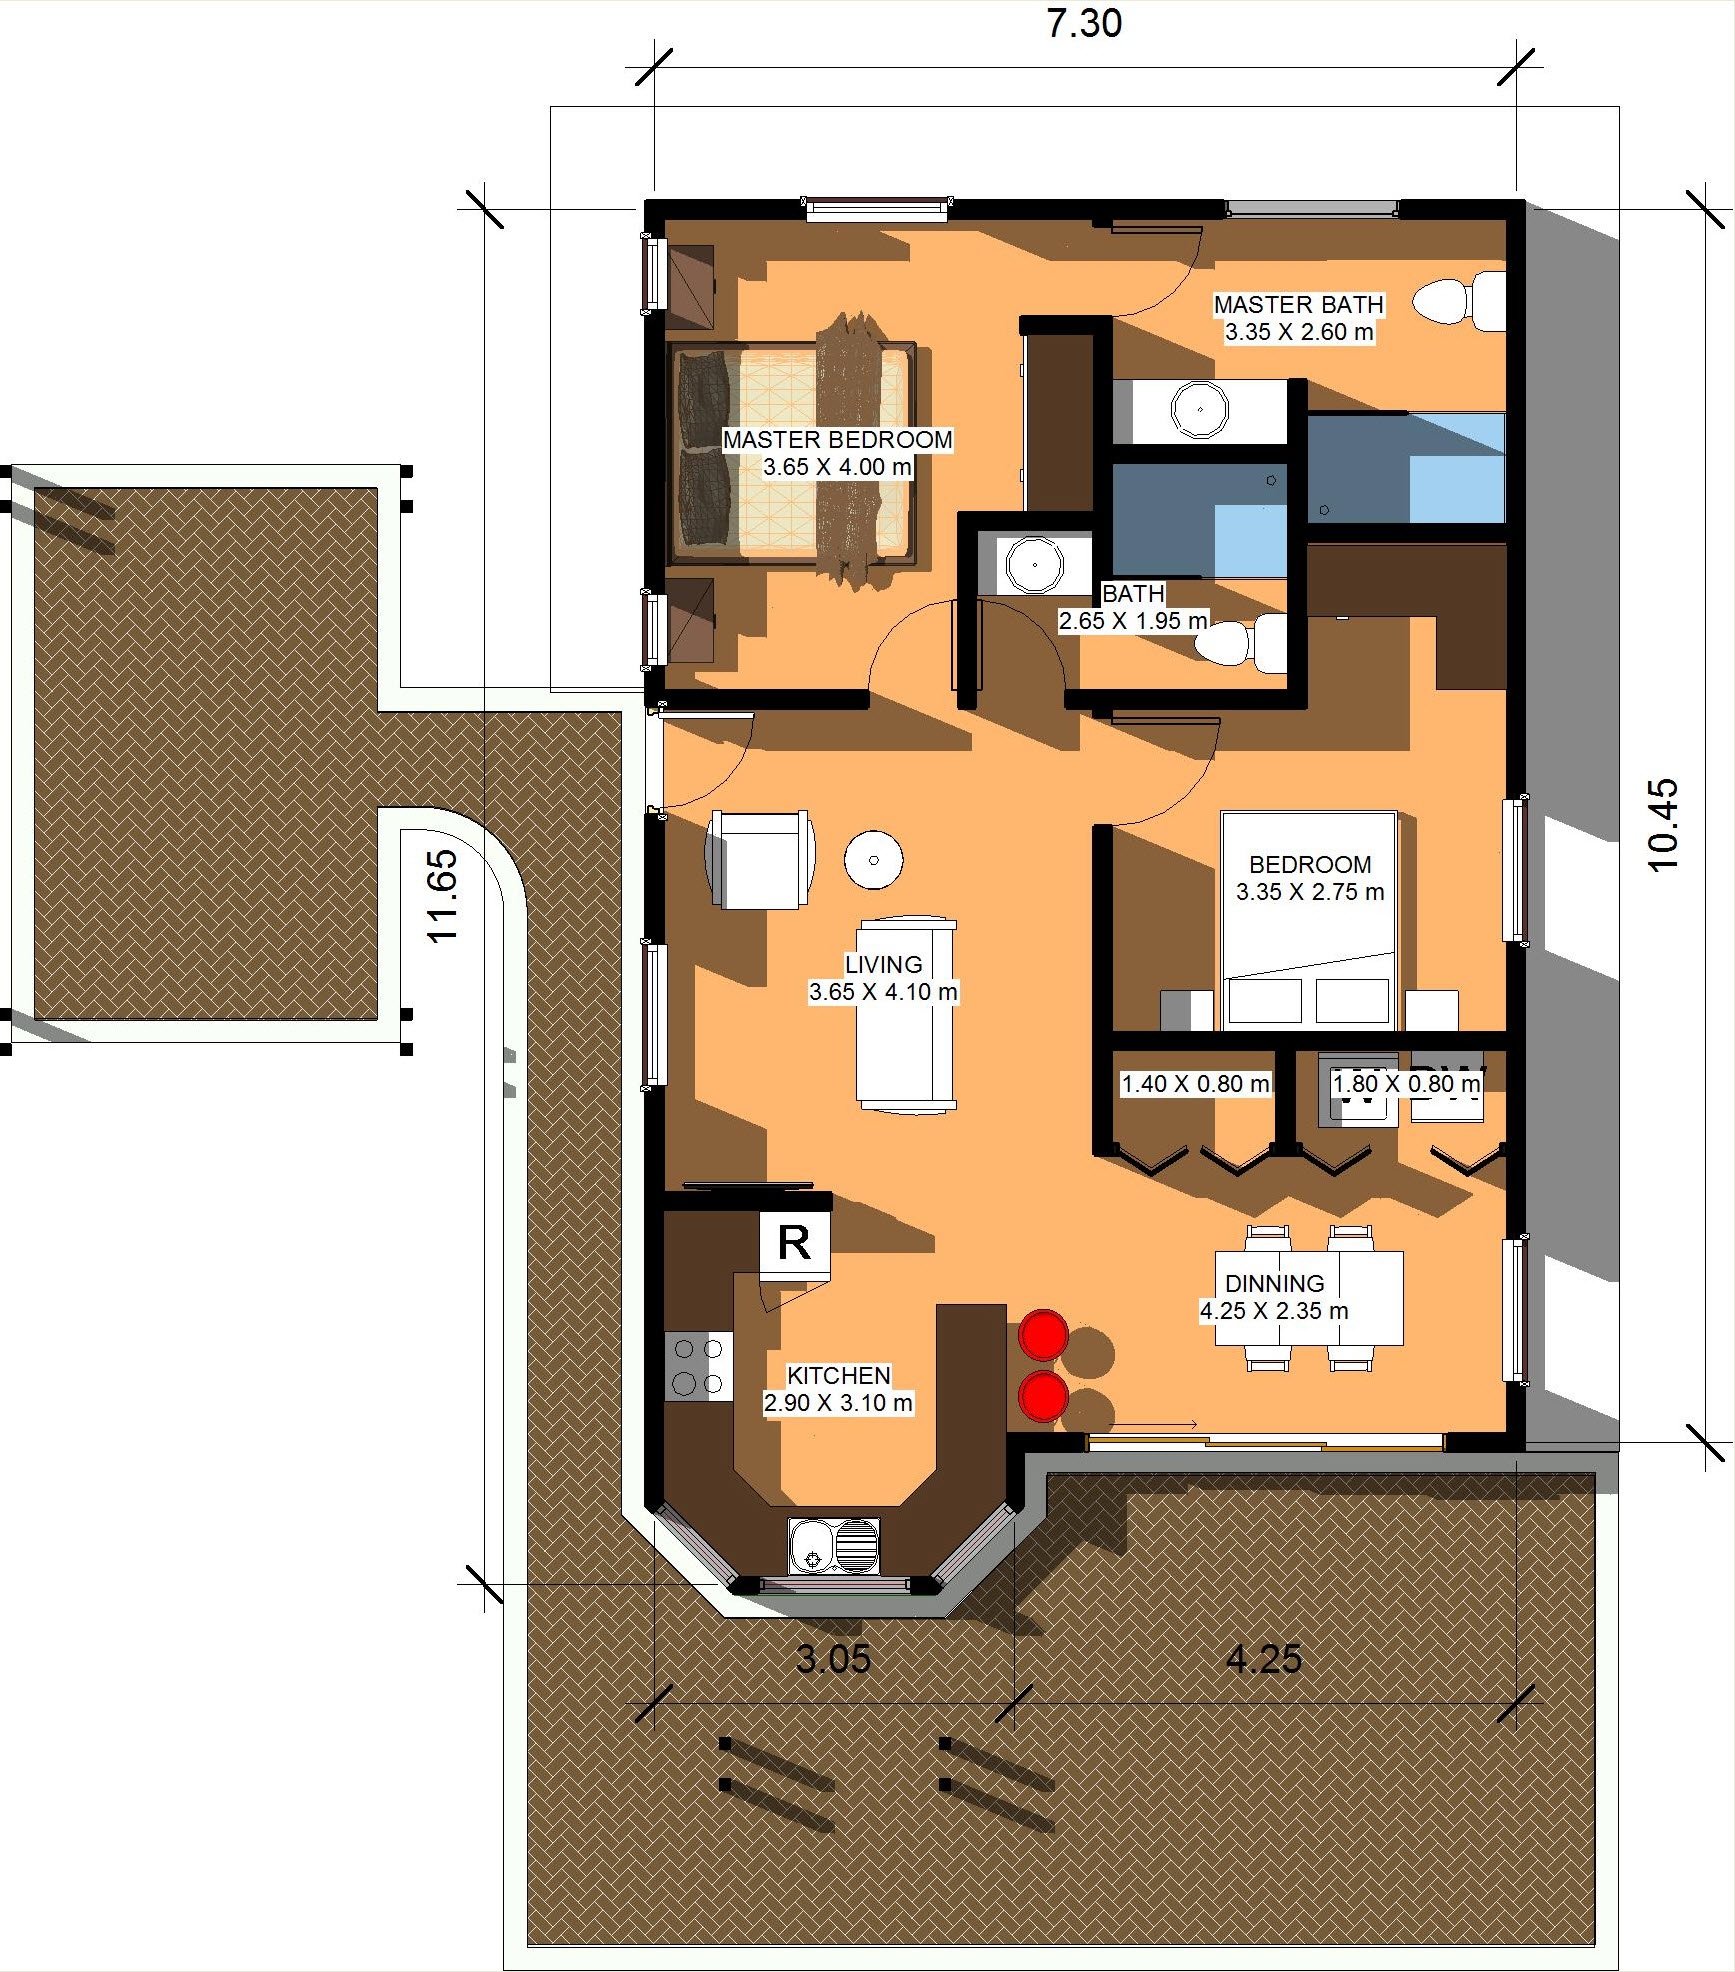 House design for 60 square meter - House Design For 60 Square Meter 35